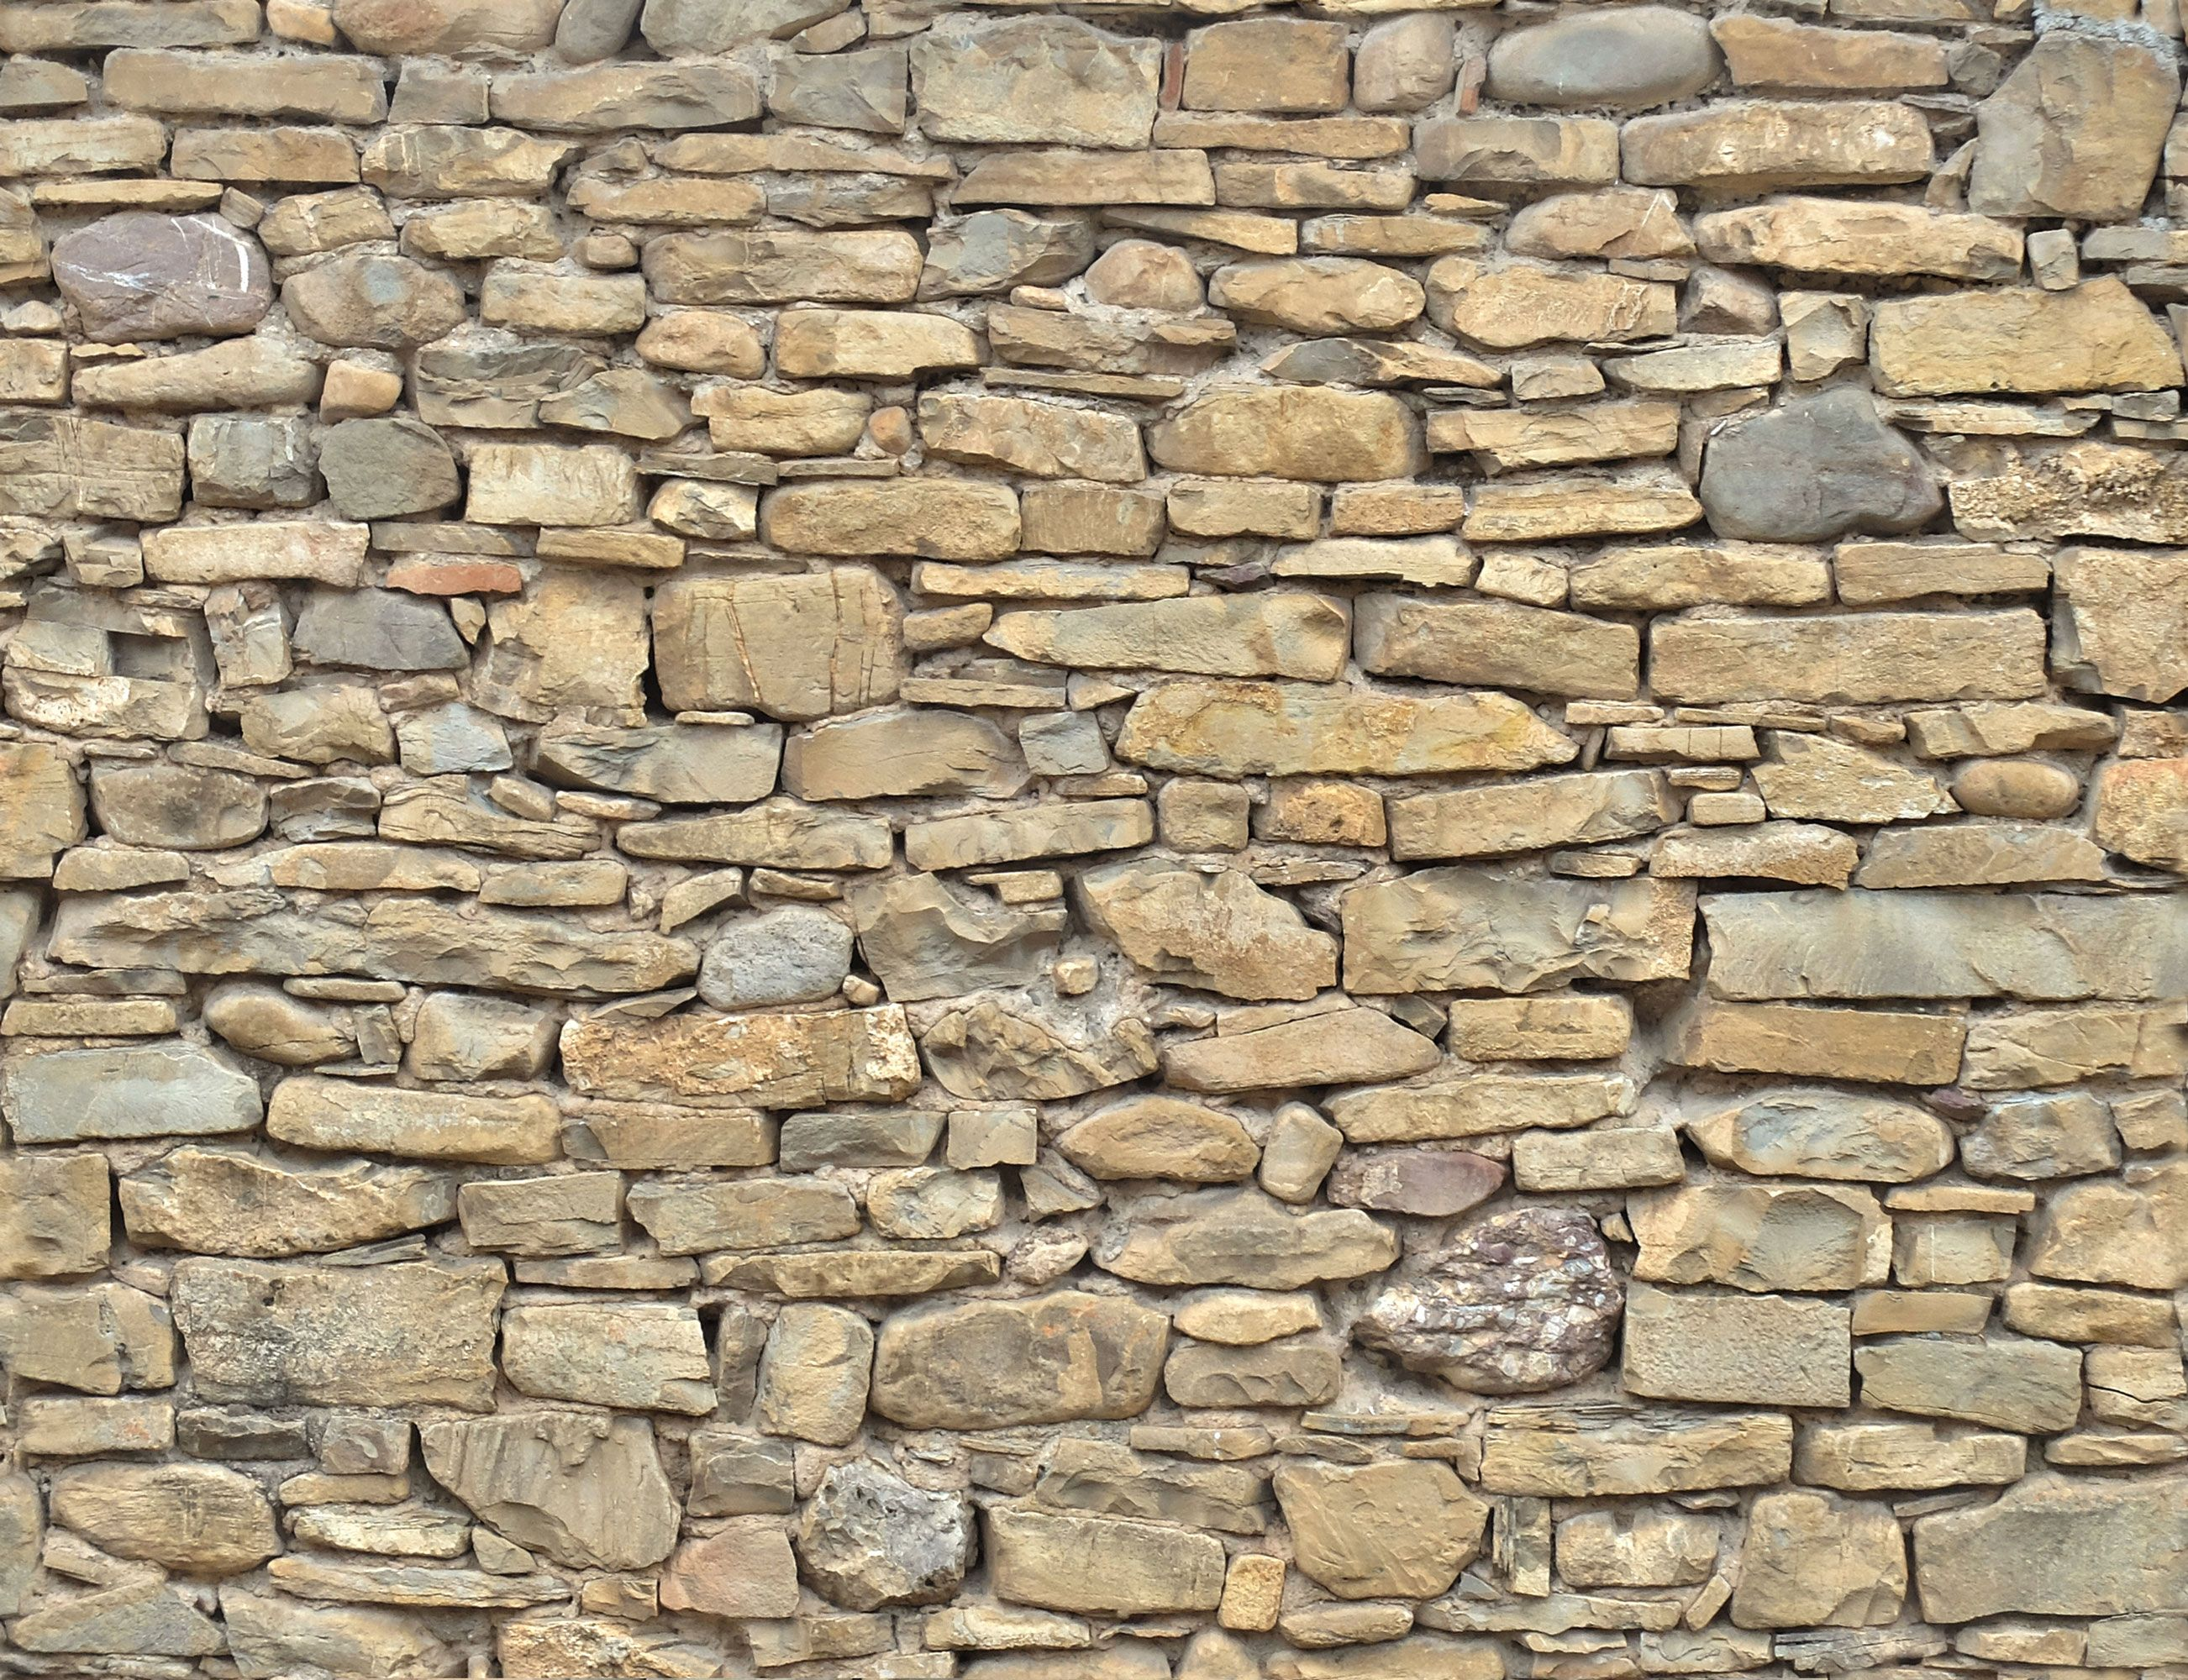 Rubble Stone Wall : Stone rubble wall jaca architextures material